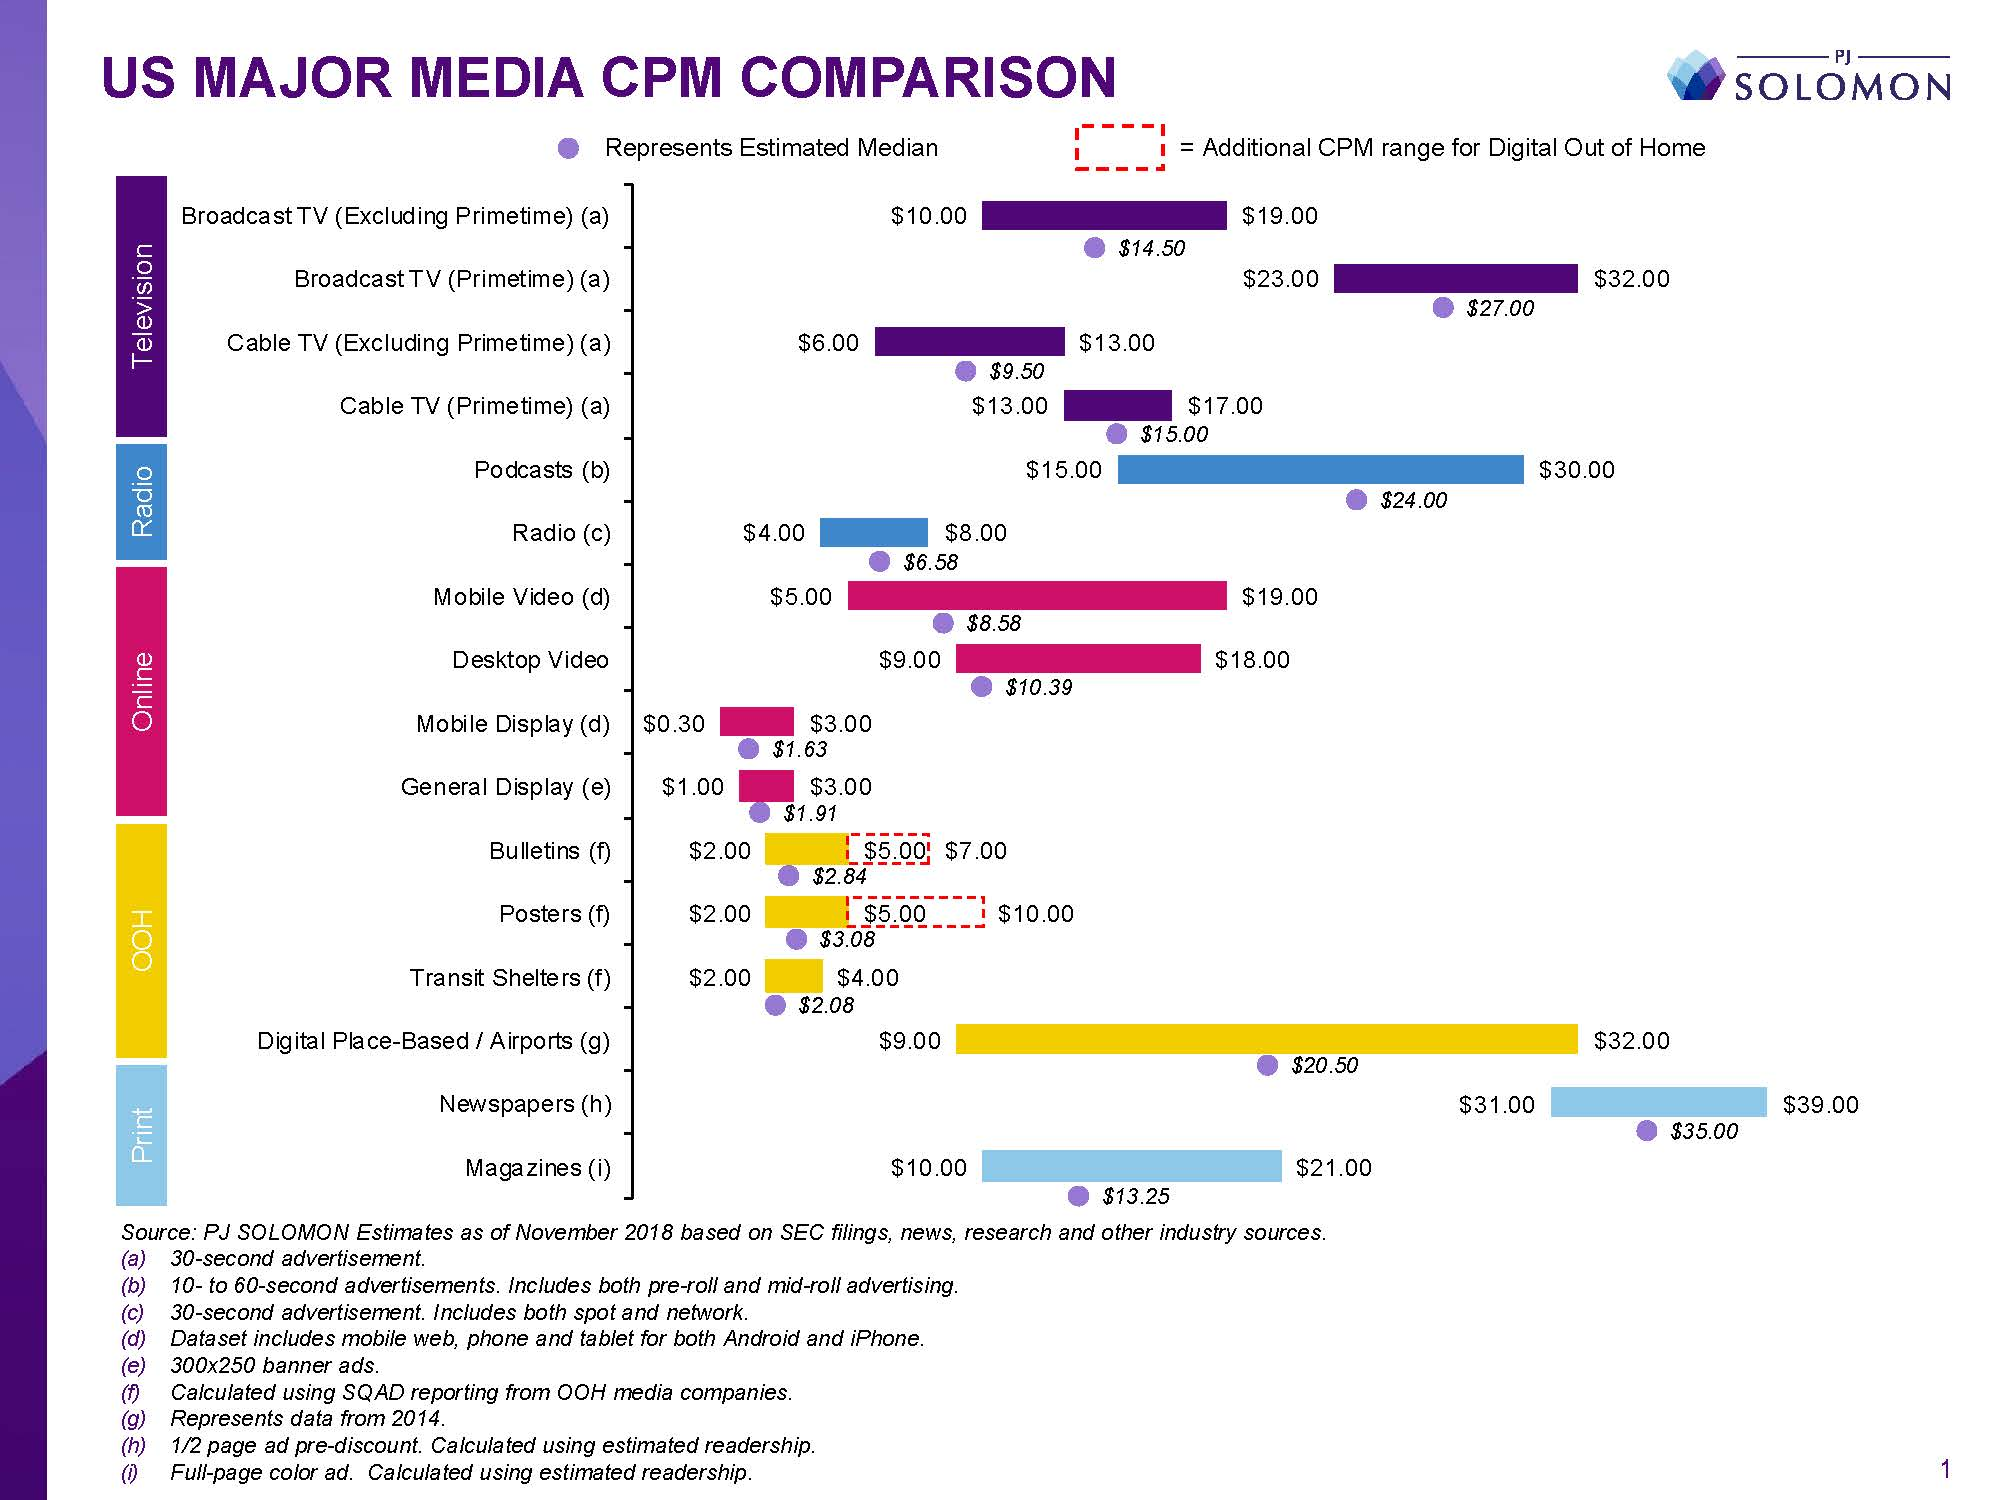 Chart of US Media CPM Comparisons